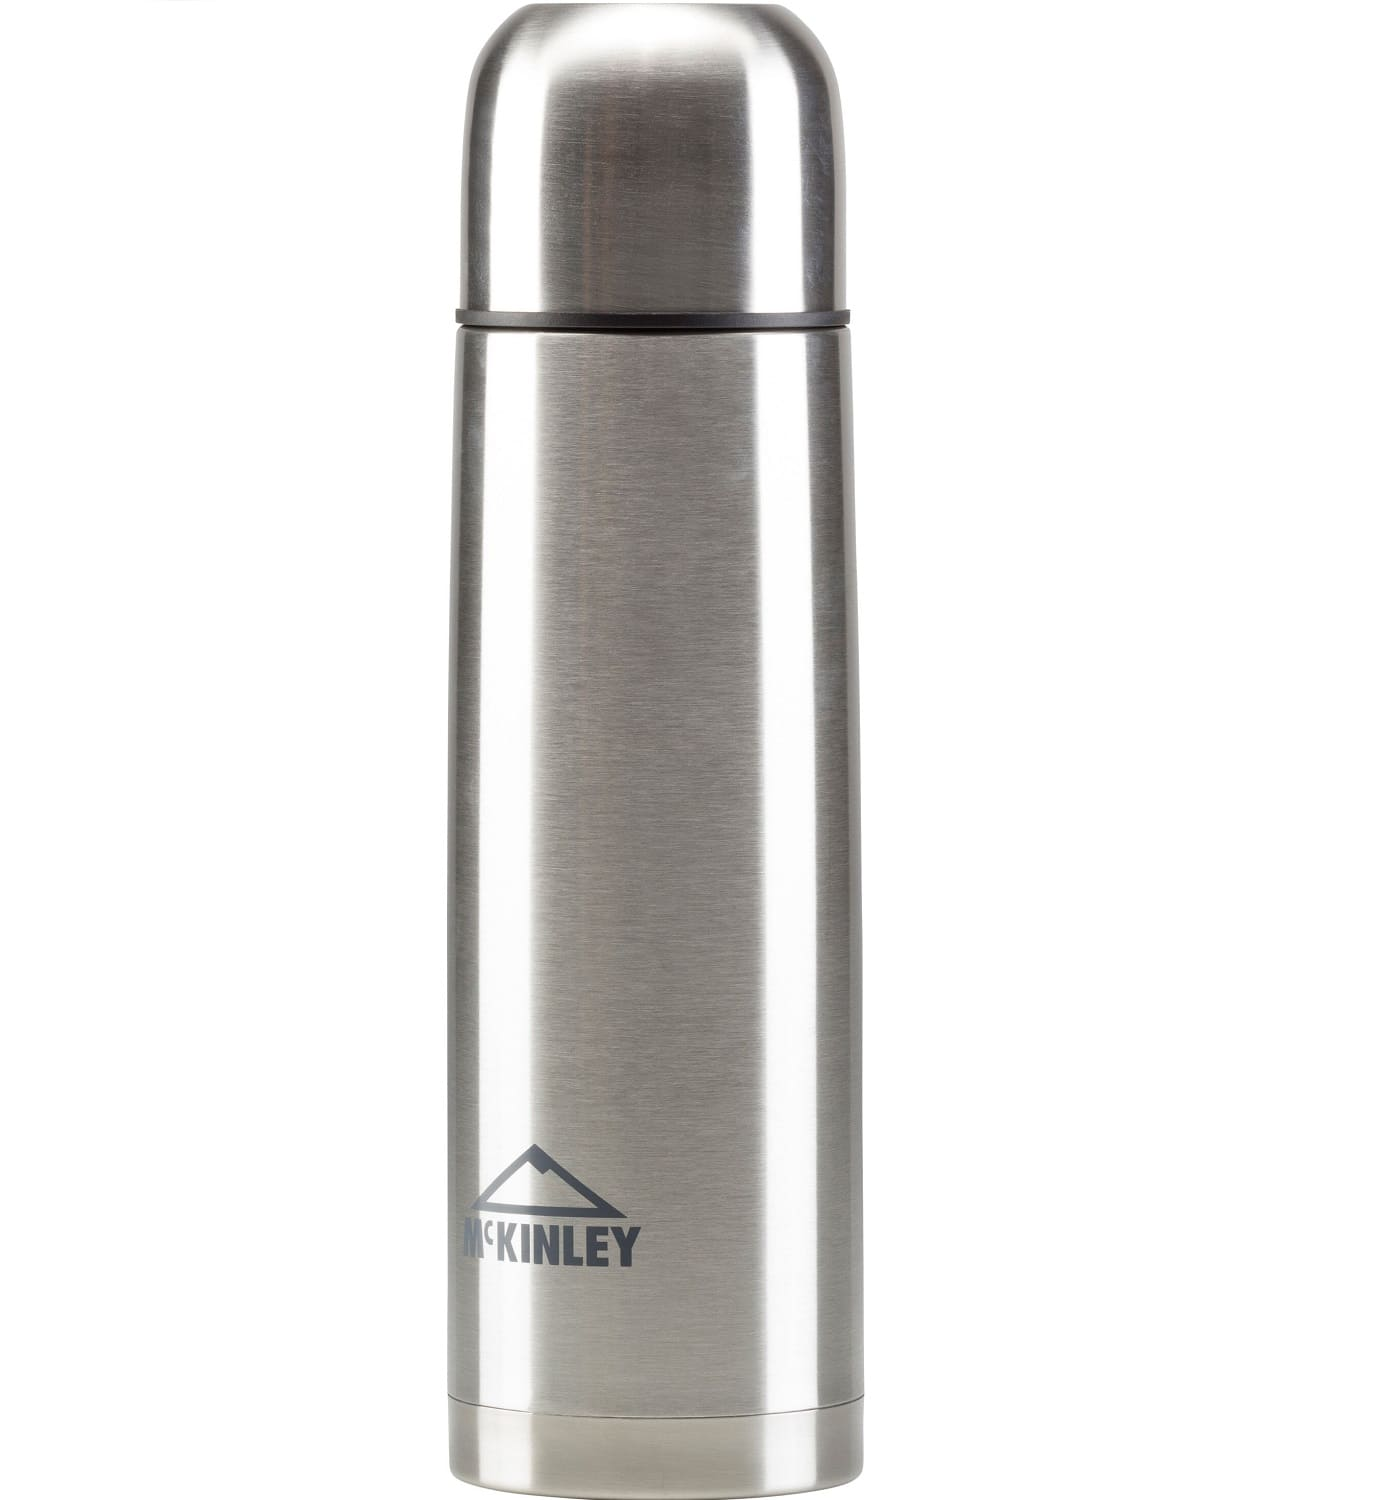 MCKINLEY THERMOSFLASCHE STAINLESS STEEL 1L SILVER